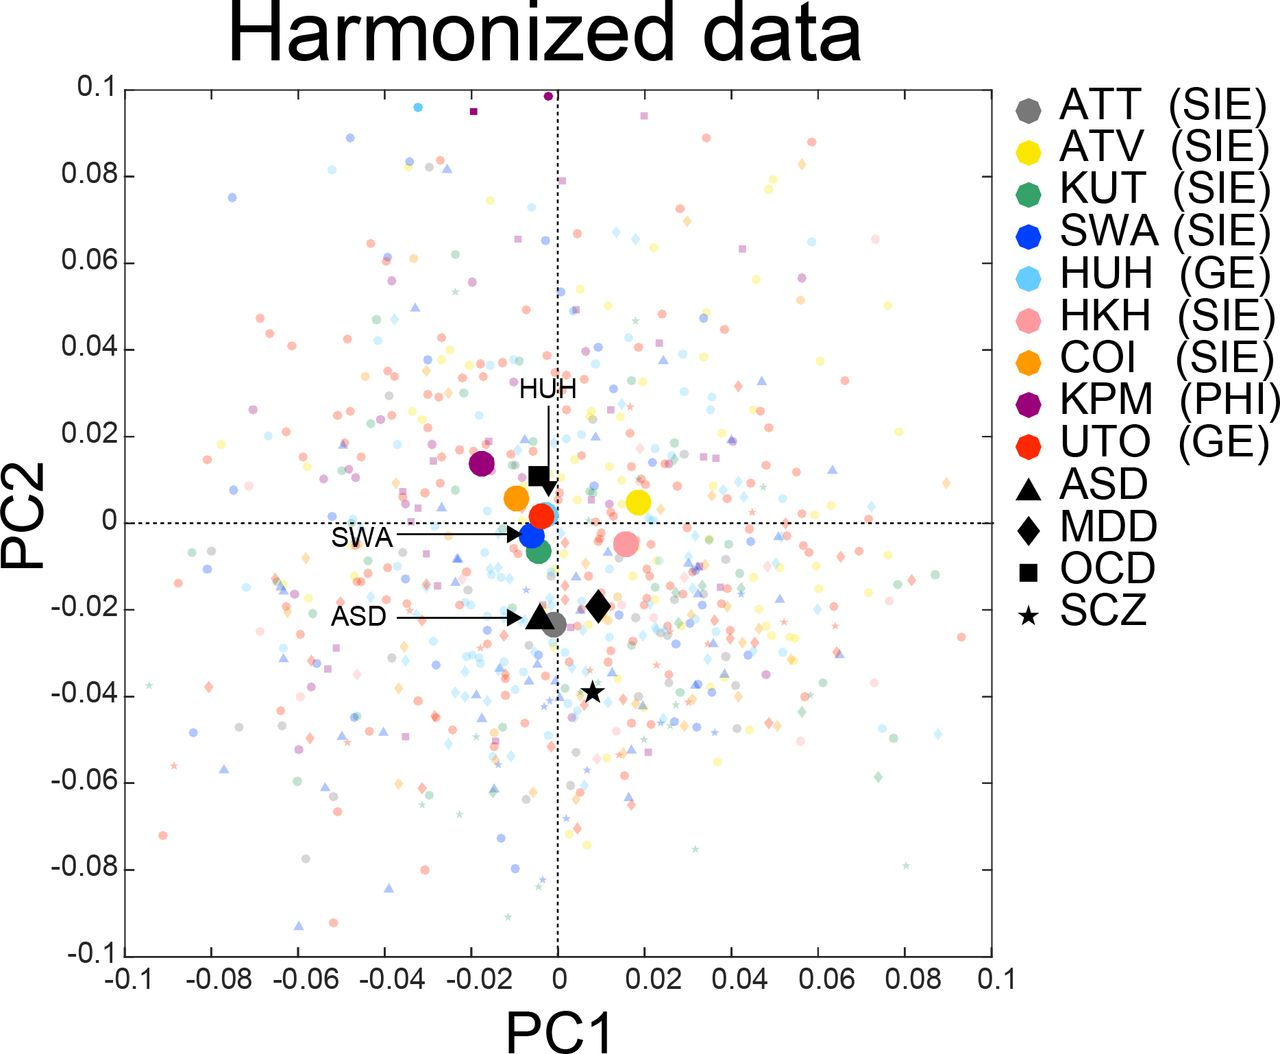 Harmonization of resting-state functional MRI data across